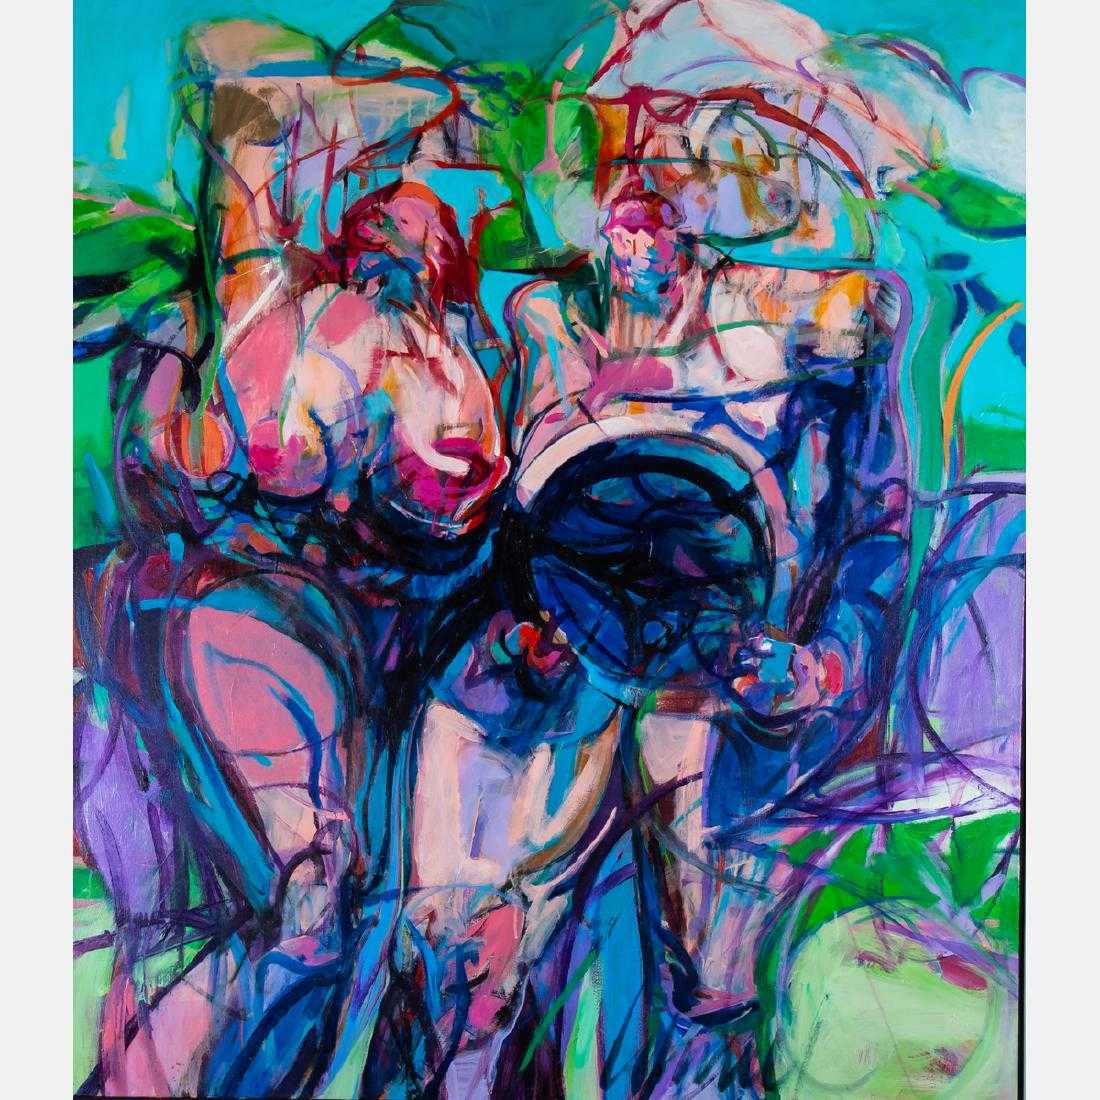 Two large paintings by Thompson Lehnert (American, b. 1931), will include this one titled Freedom, signed lower right and measuring 52 ¼ inches by 45 inches (est. $2,000-$3,000).